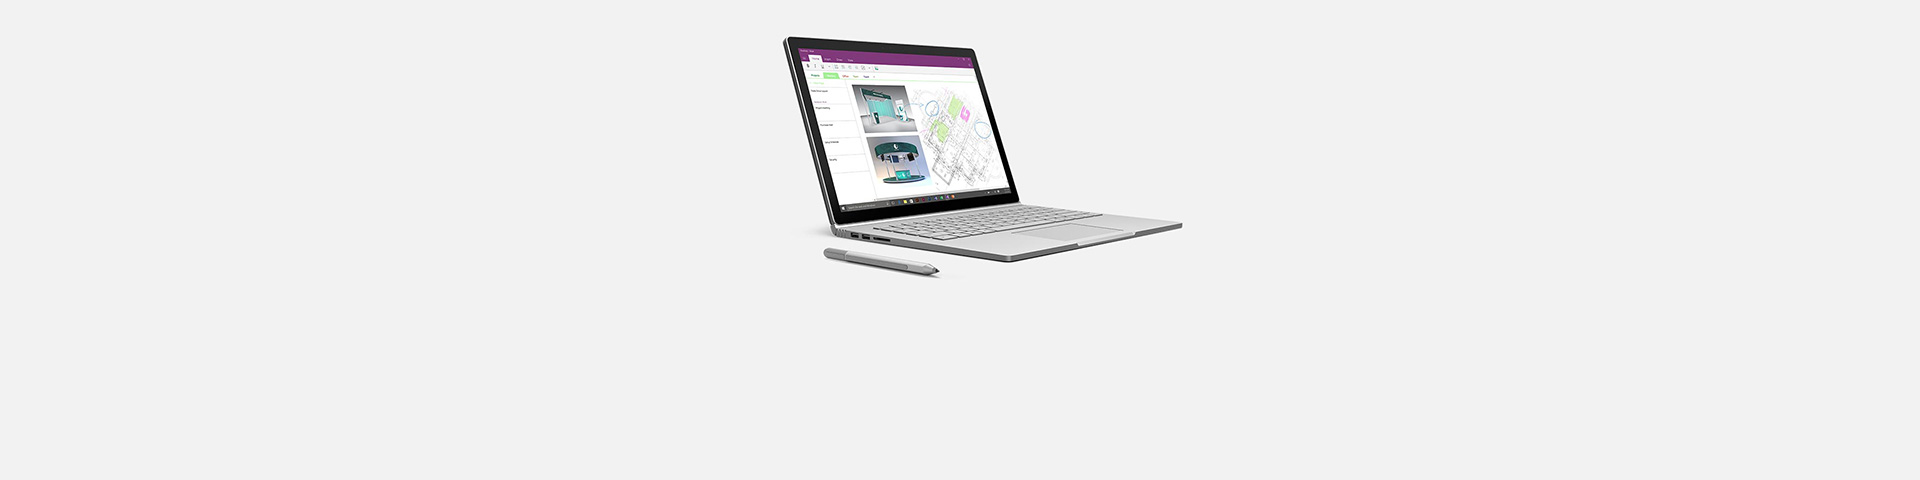 Surface Book,了解更多信息